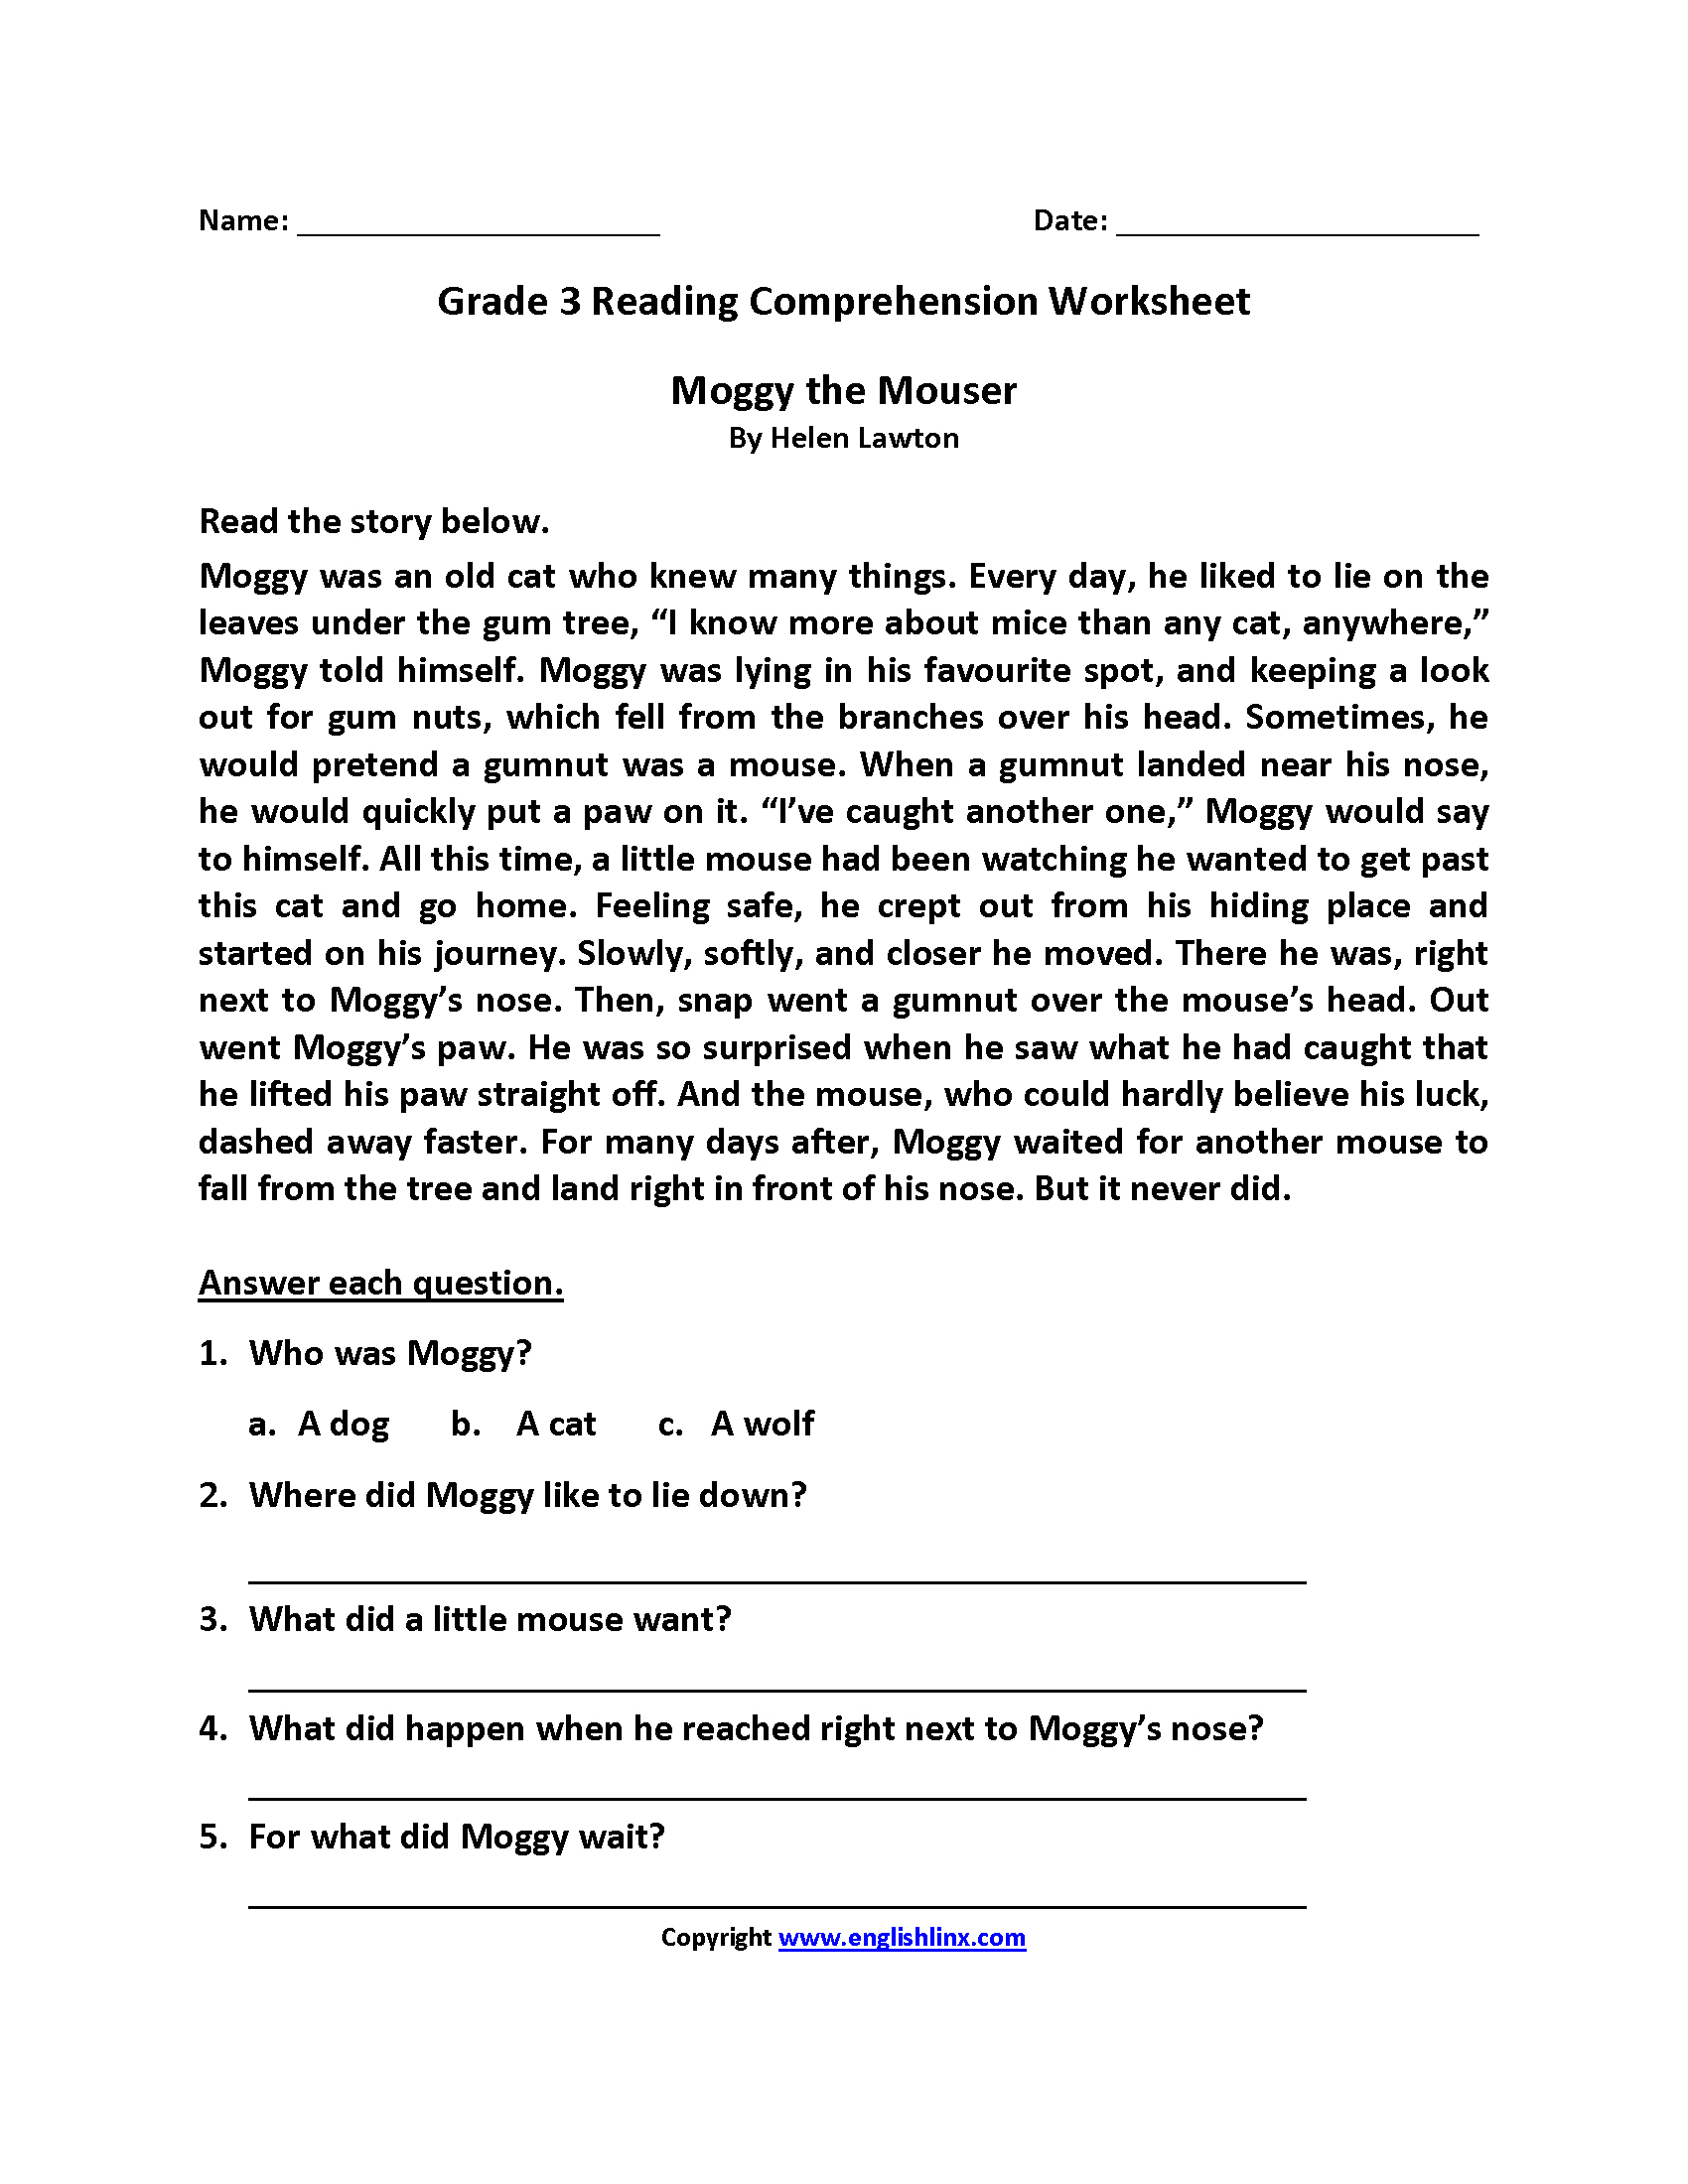 Free Printable Reading Comprehension Worksheets 3Rd Grade To Free - Third Grade Reading Worksheets Free Printable